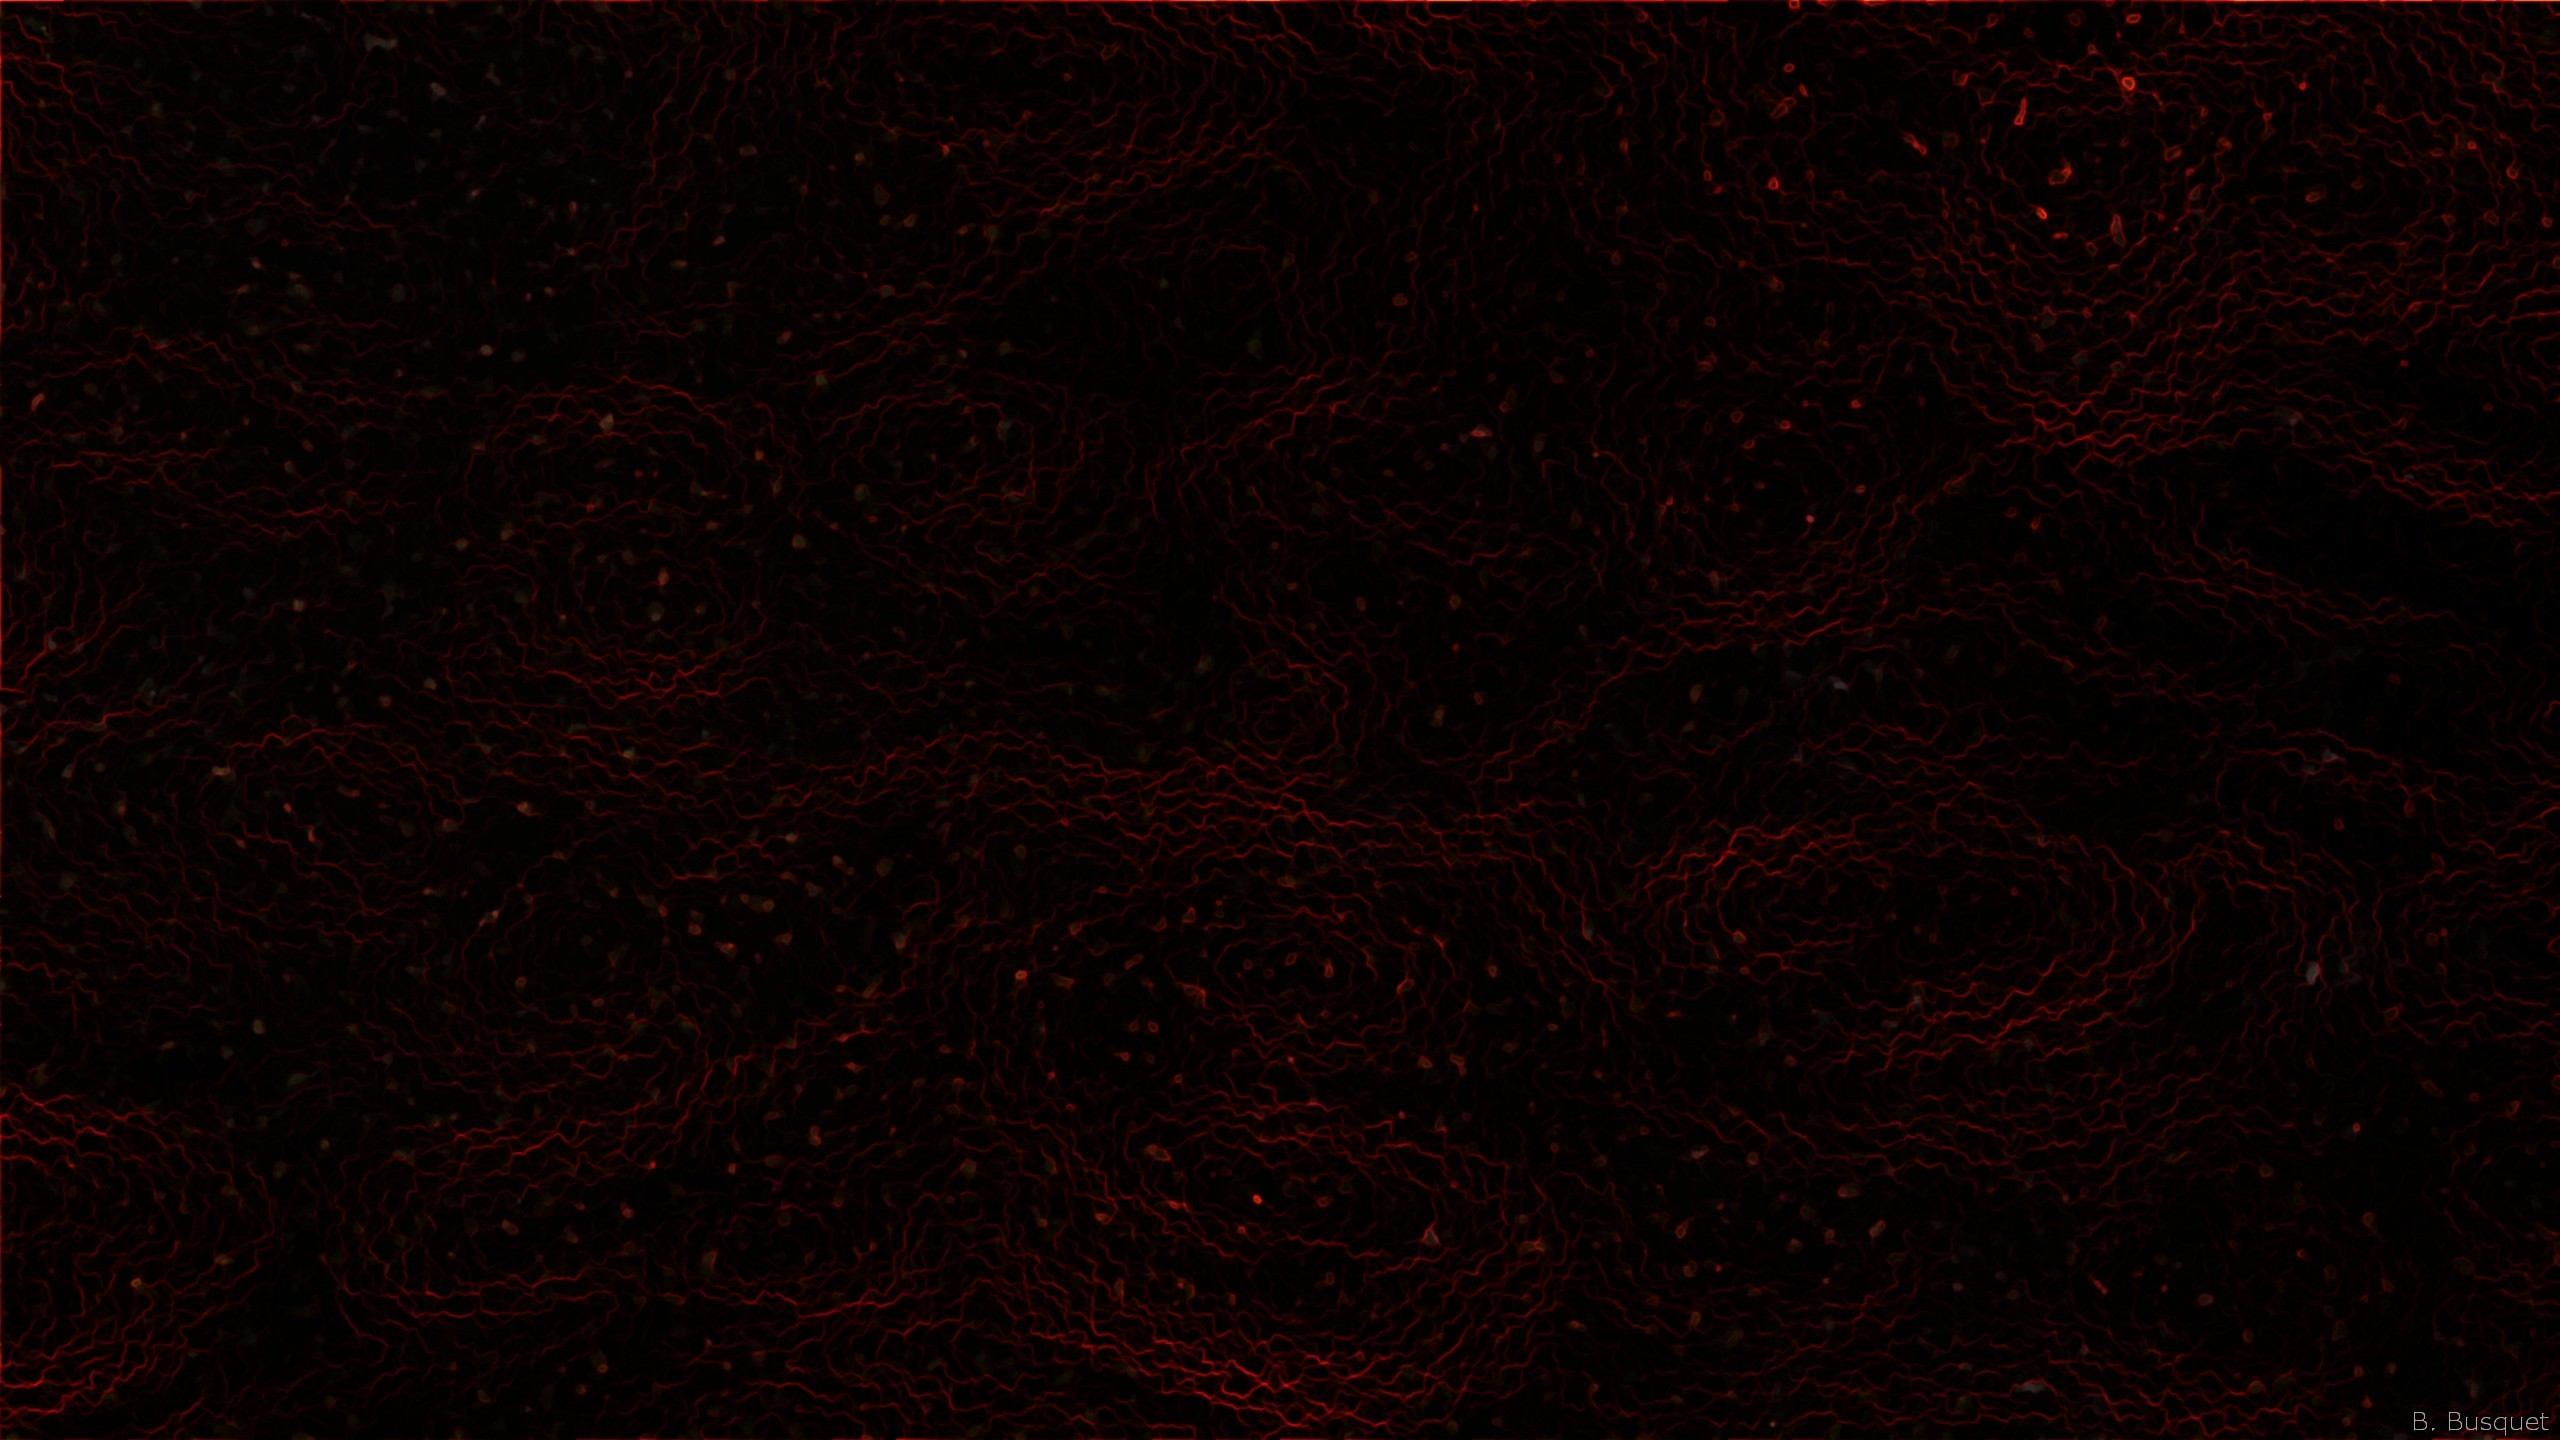 Abstract wallpaper with a dark pattern in black and red colors.